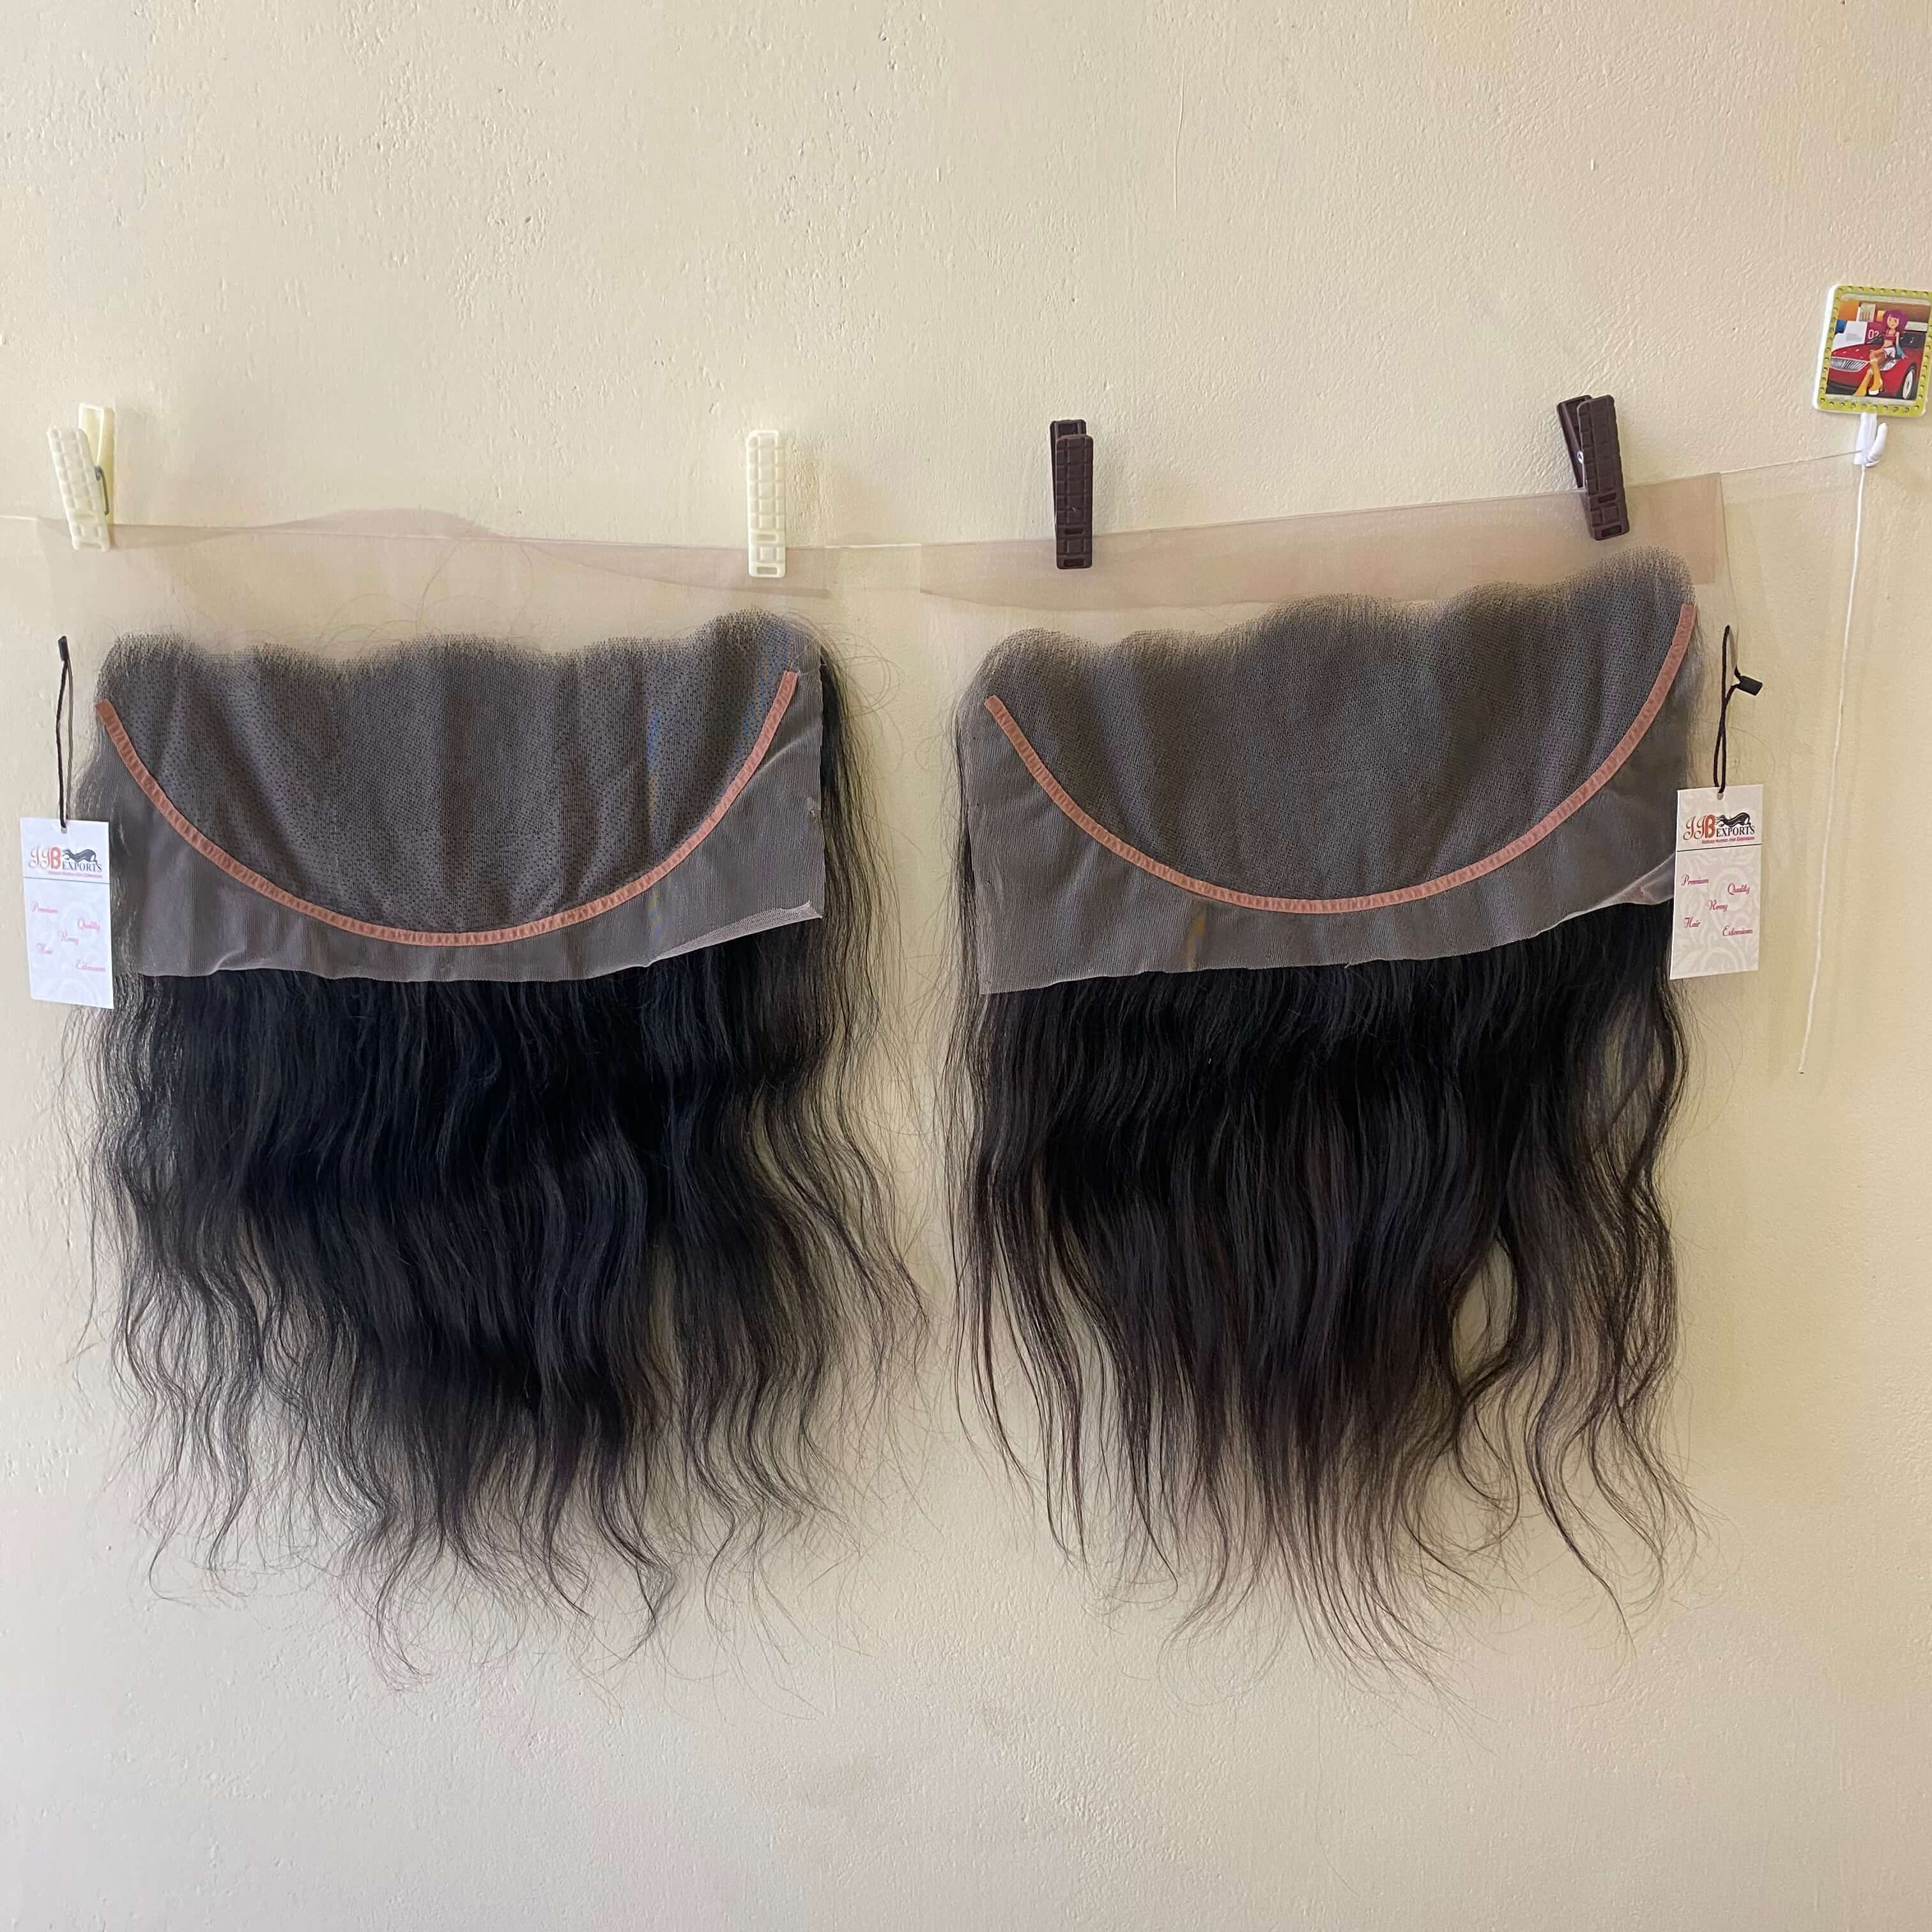 Temple Cut Raw Indian Human Hair Extension  Virgin Cuticle Aligned 4x4 13x4 Lace Closure Frontal Hair